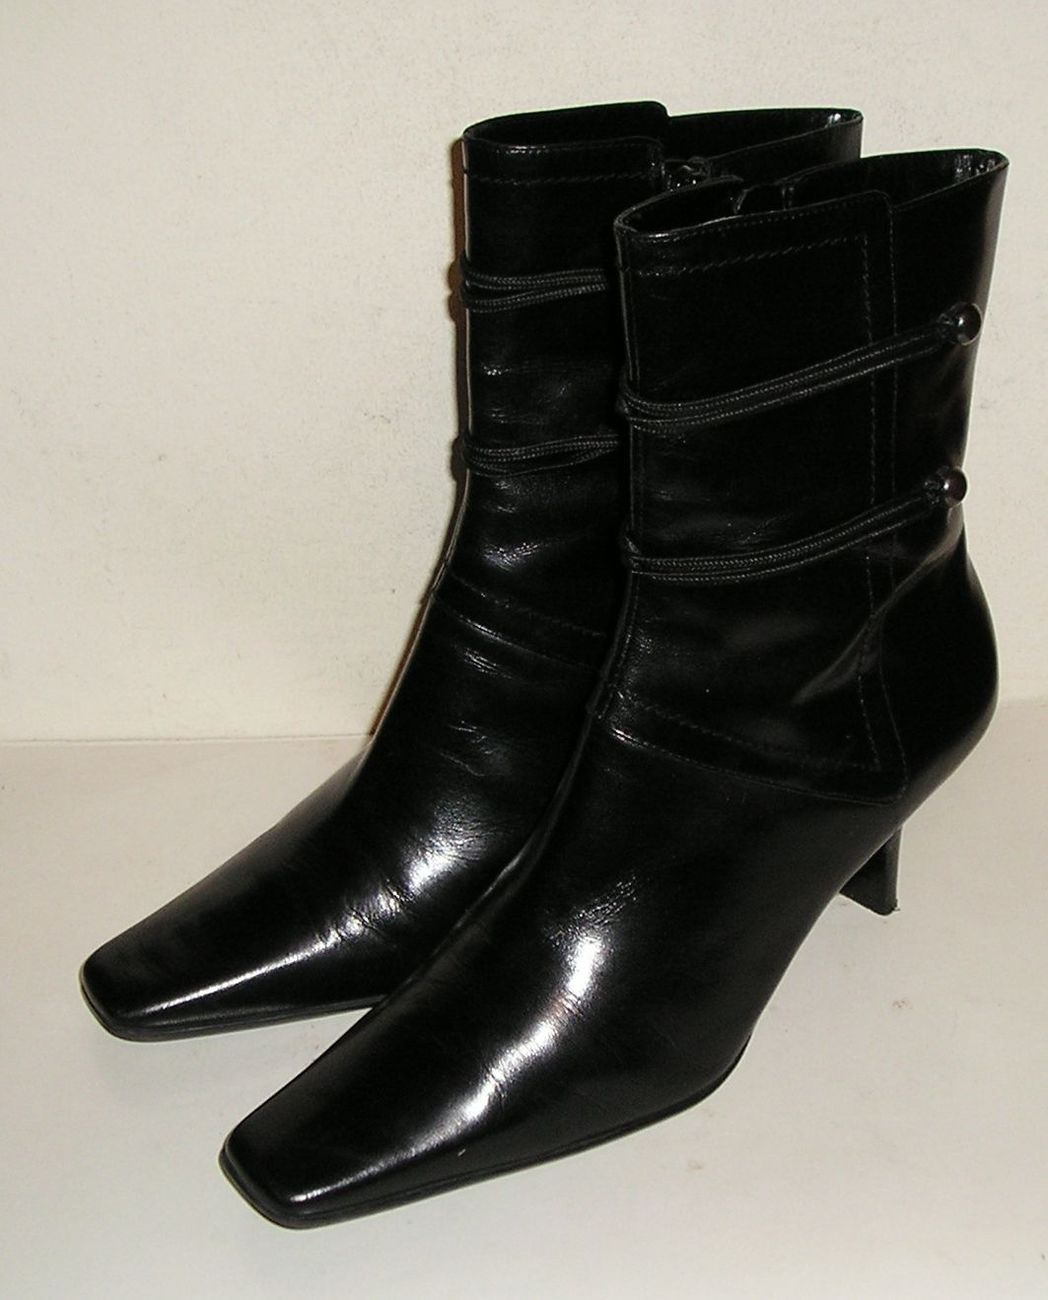 Nine west nwsyd women s black leather fashion ankle boots 7 m   1